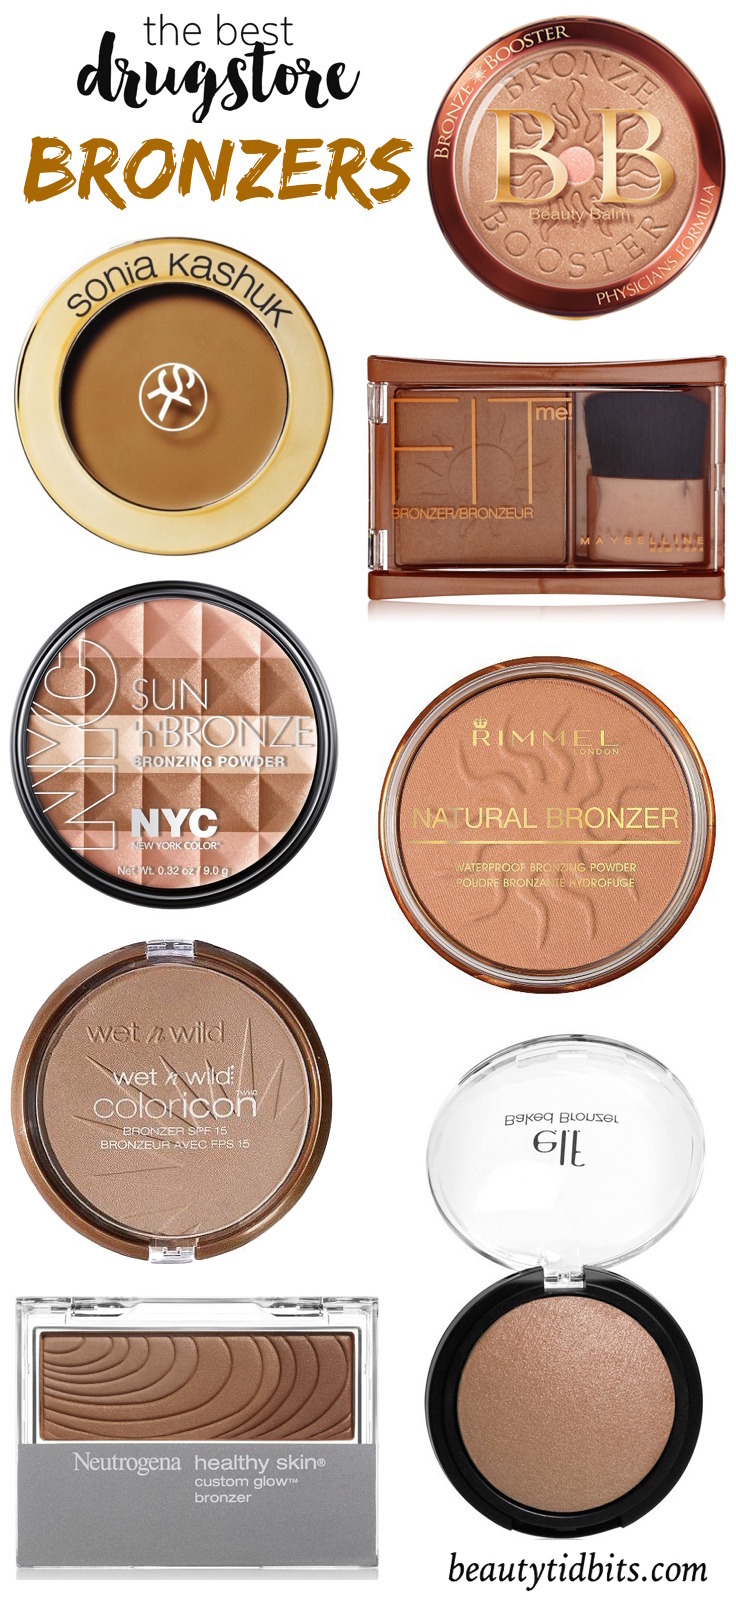 Best Drugstore Bronzers under $  10